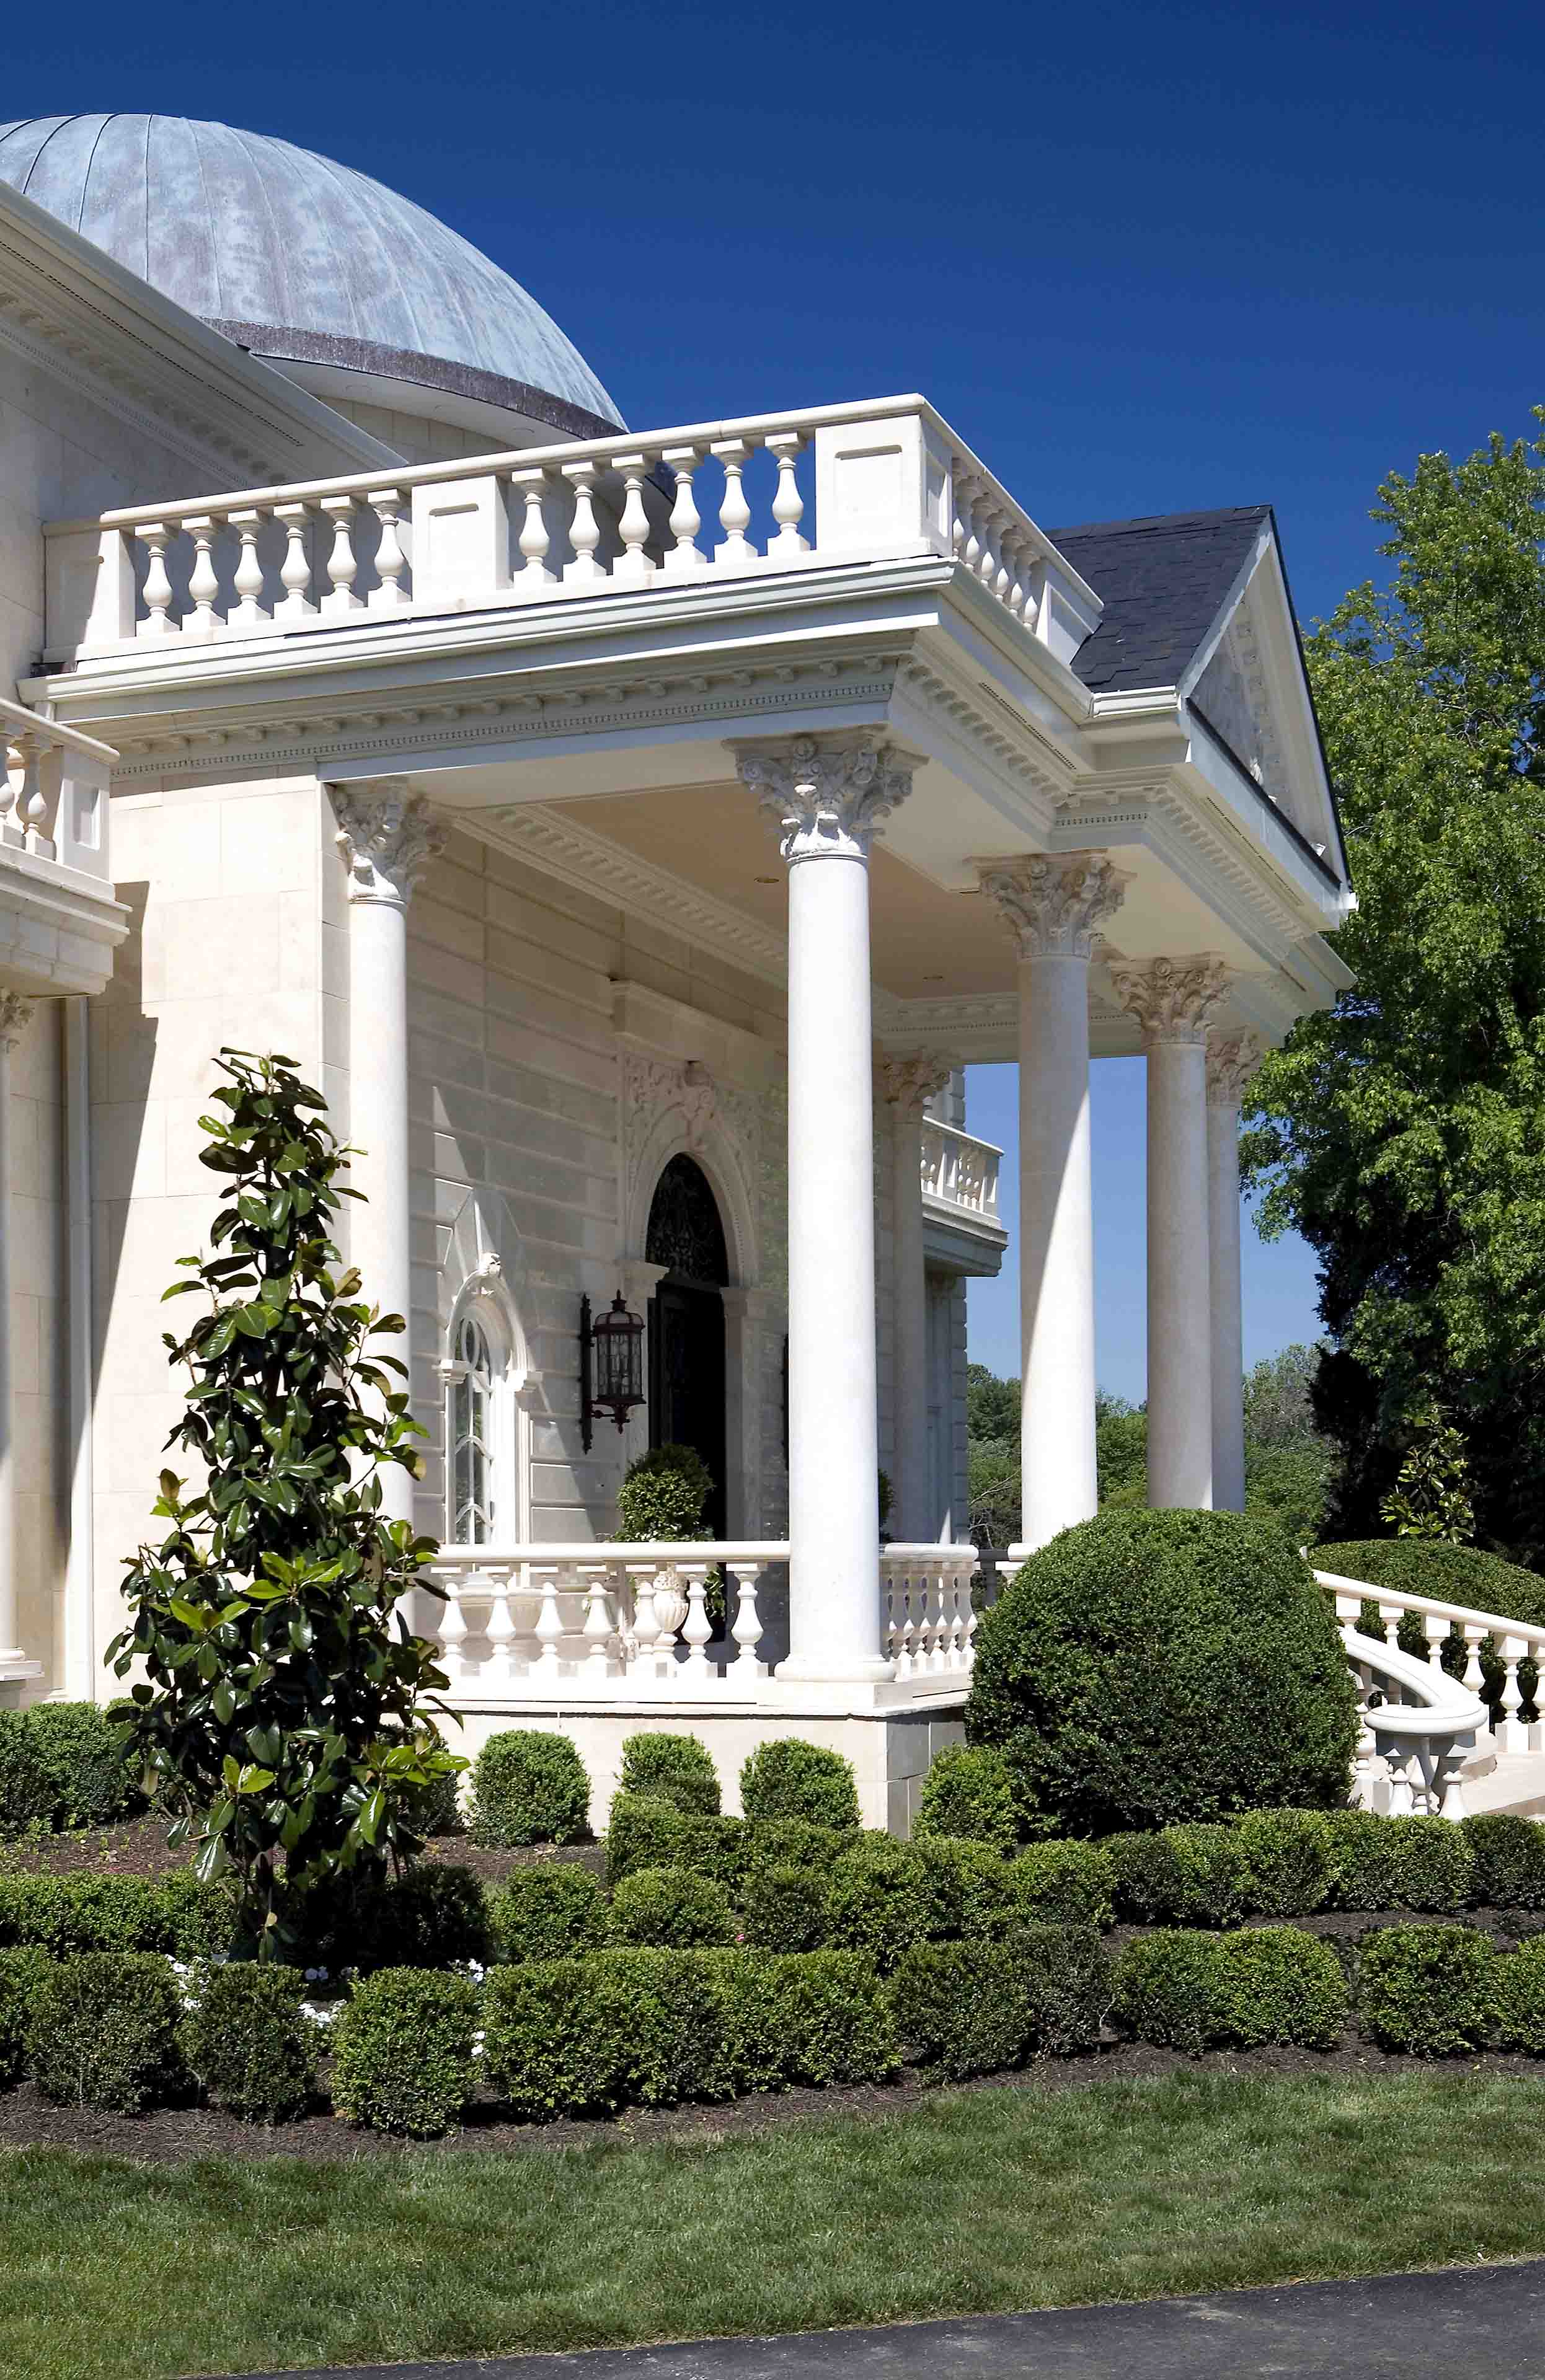 Entrance of mansion in Potomac, Maryland with columns and a dome